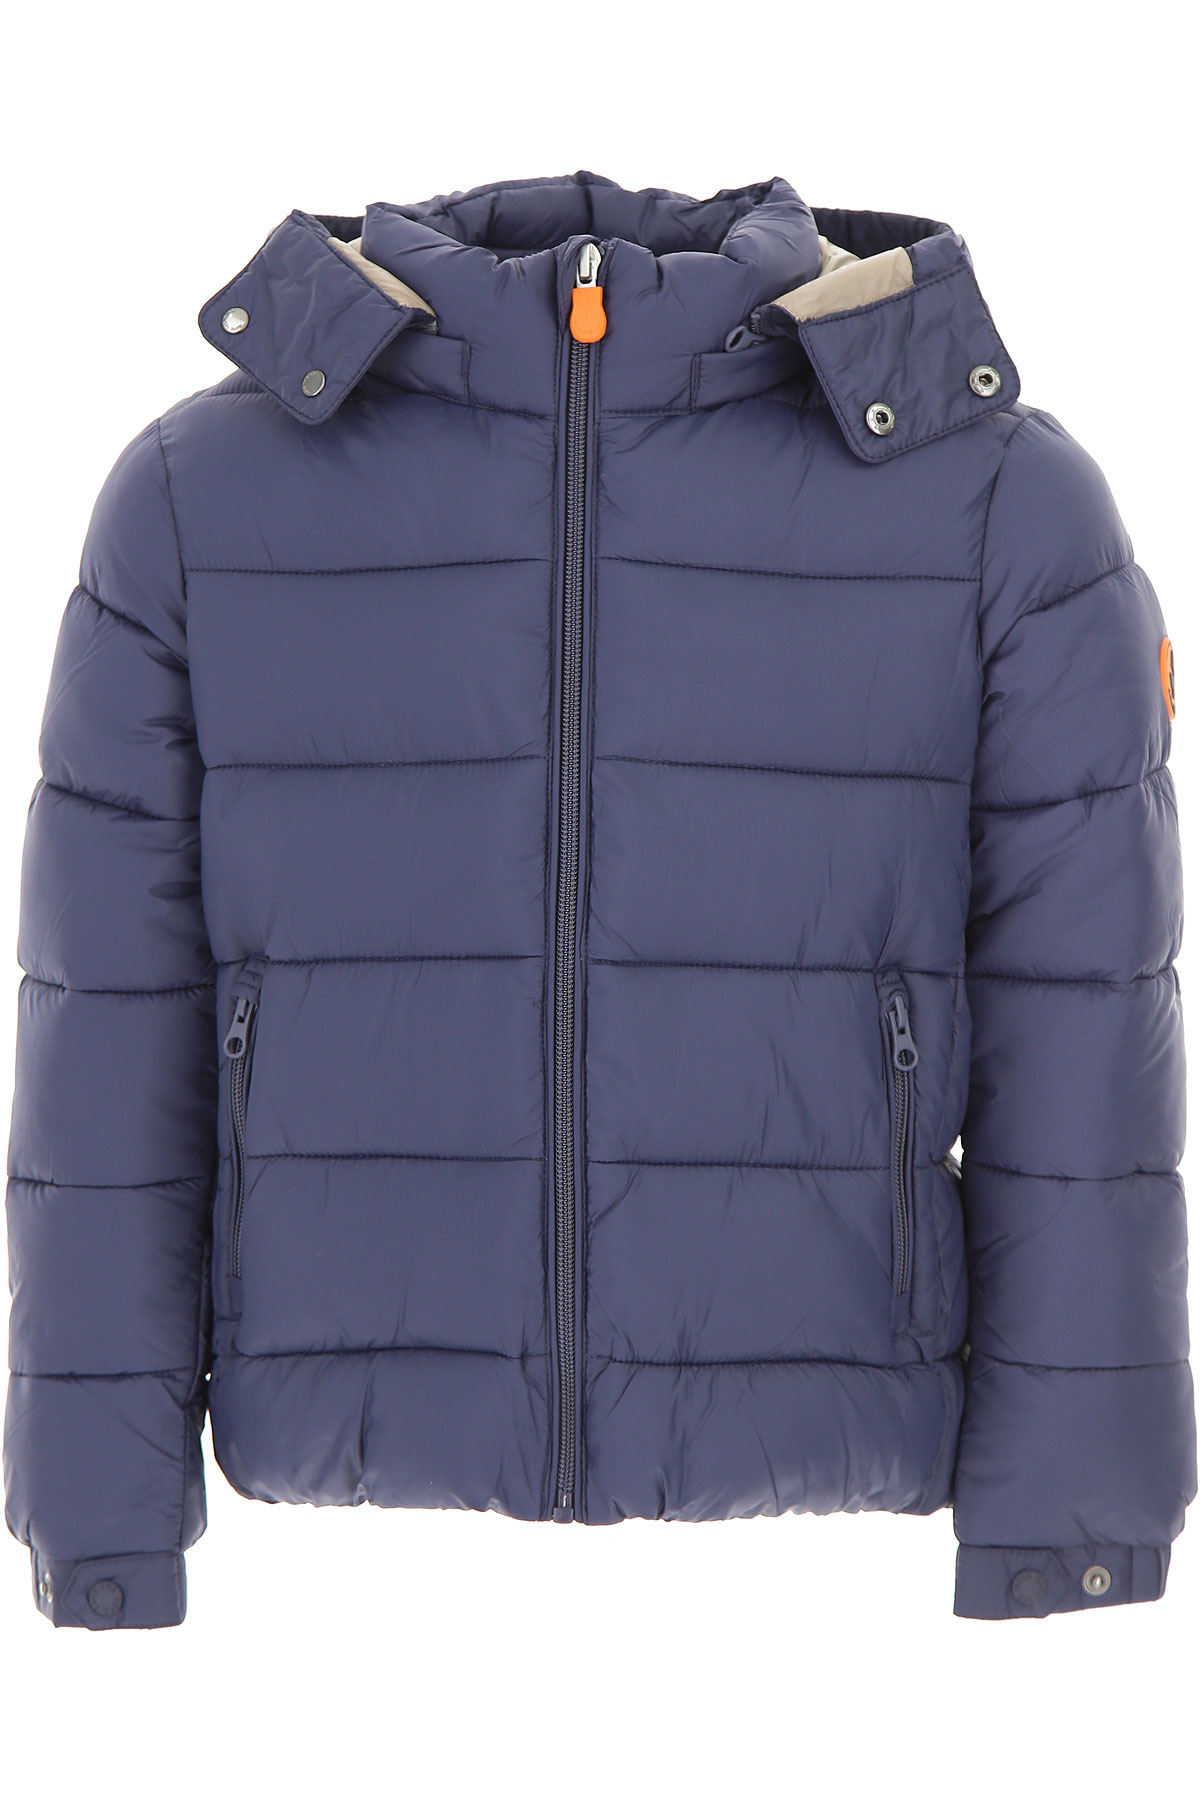 Image of Save the Duck Boys Down Jacket for Kids, Puffer Ski Jacket, Blue Navy, polyester, 2017, 10Y 2Y 4Y 8Y